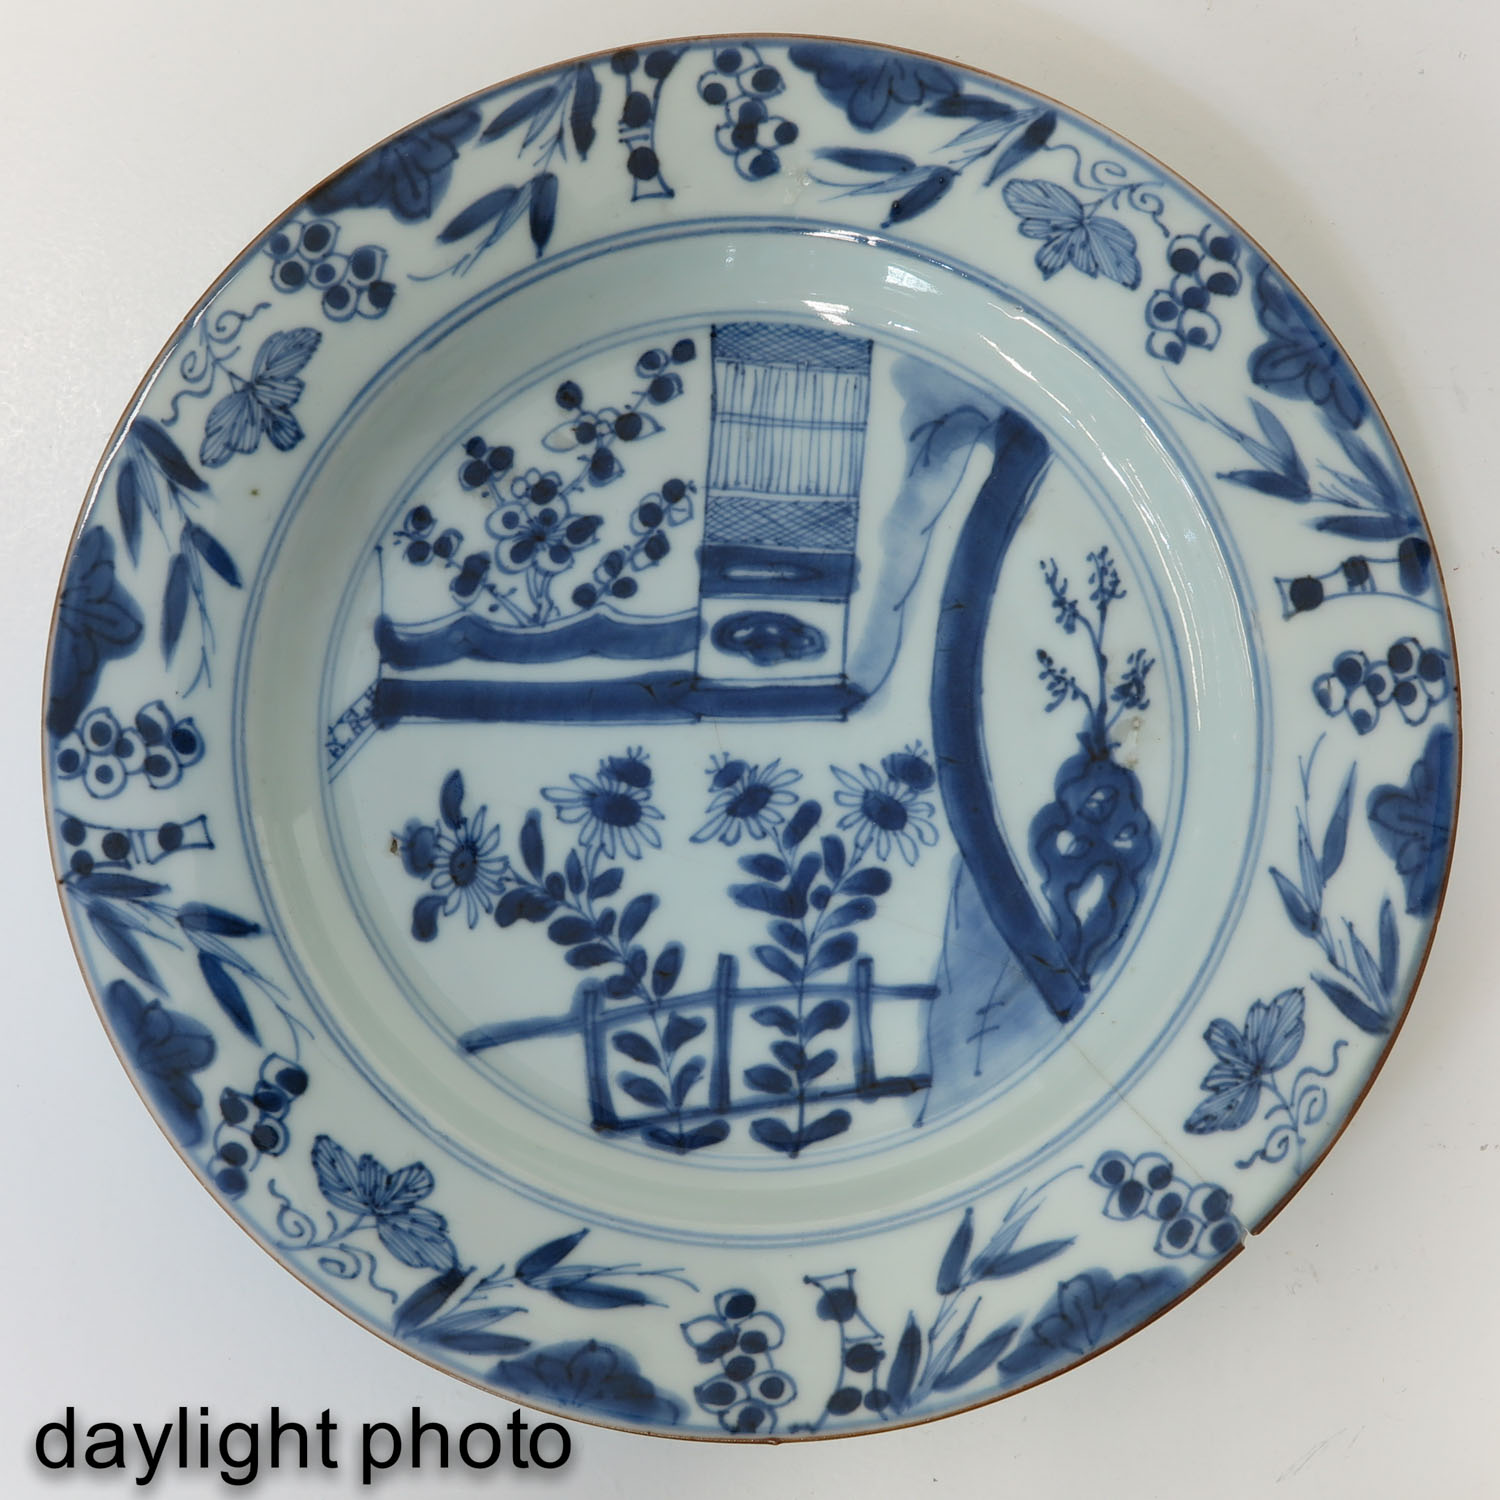 A Series of 6 Blue and White Plates - Image 9 of 10